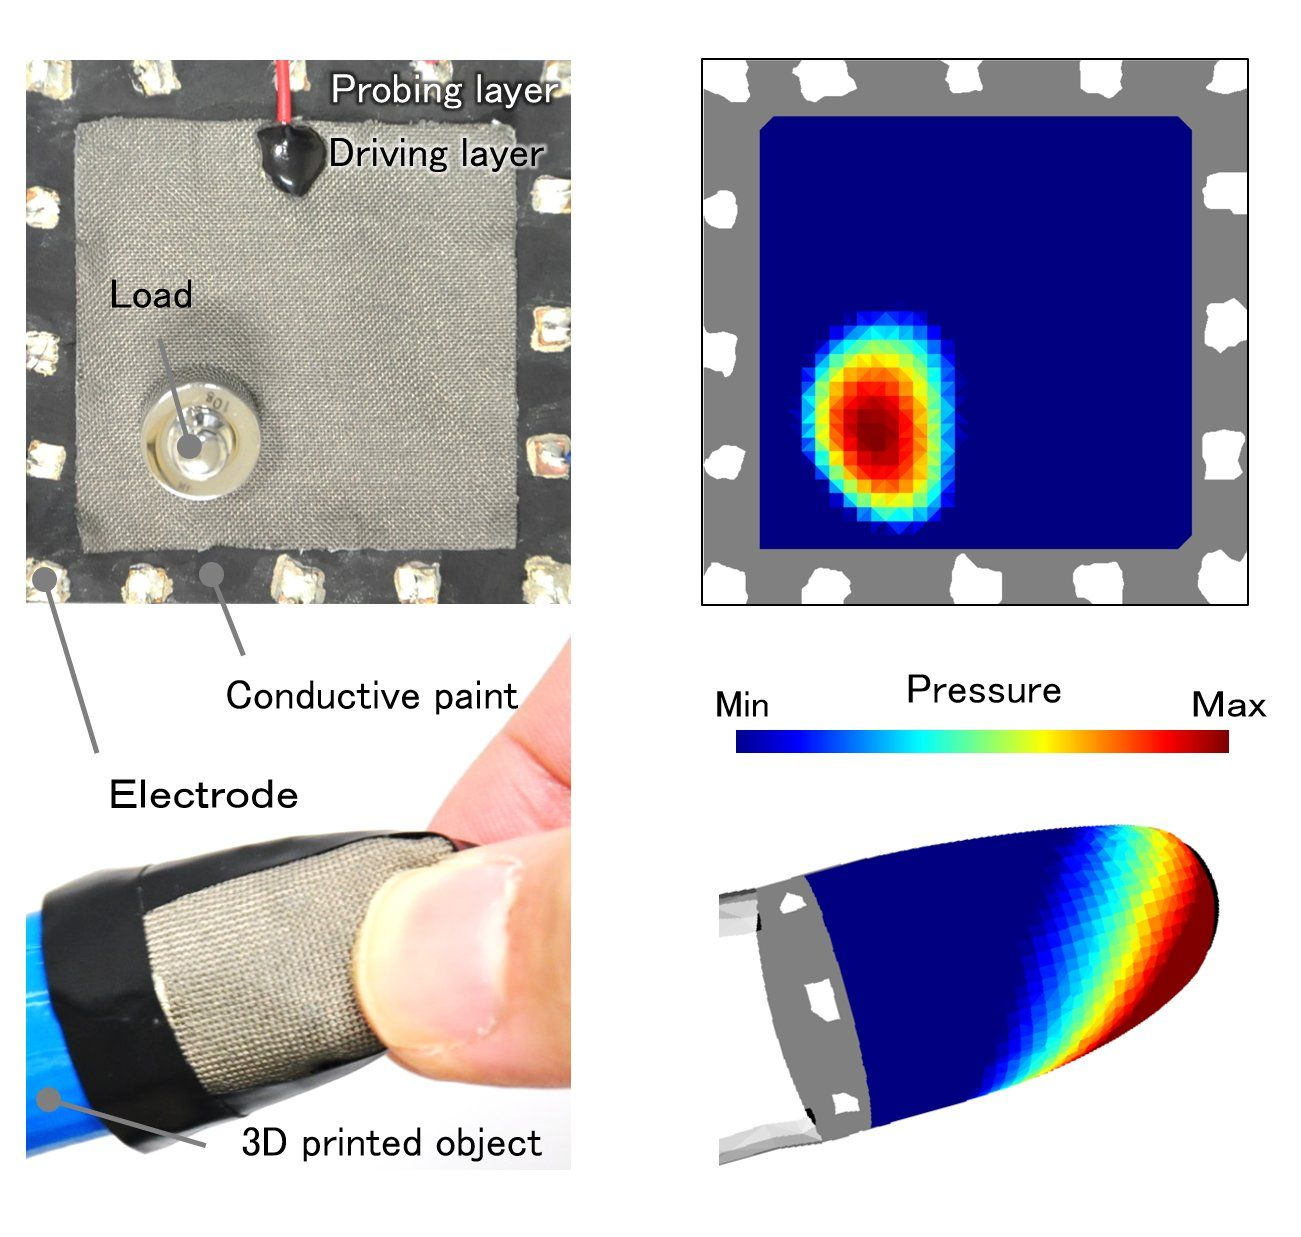 Feeling the pressure with universal tactile imaging: Touch